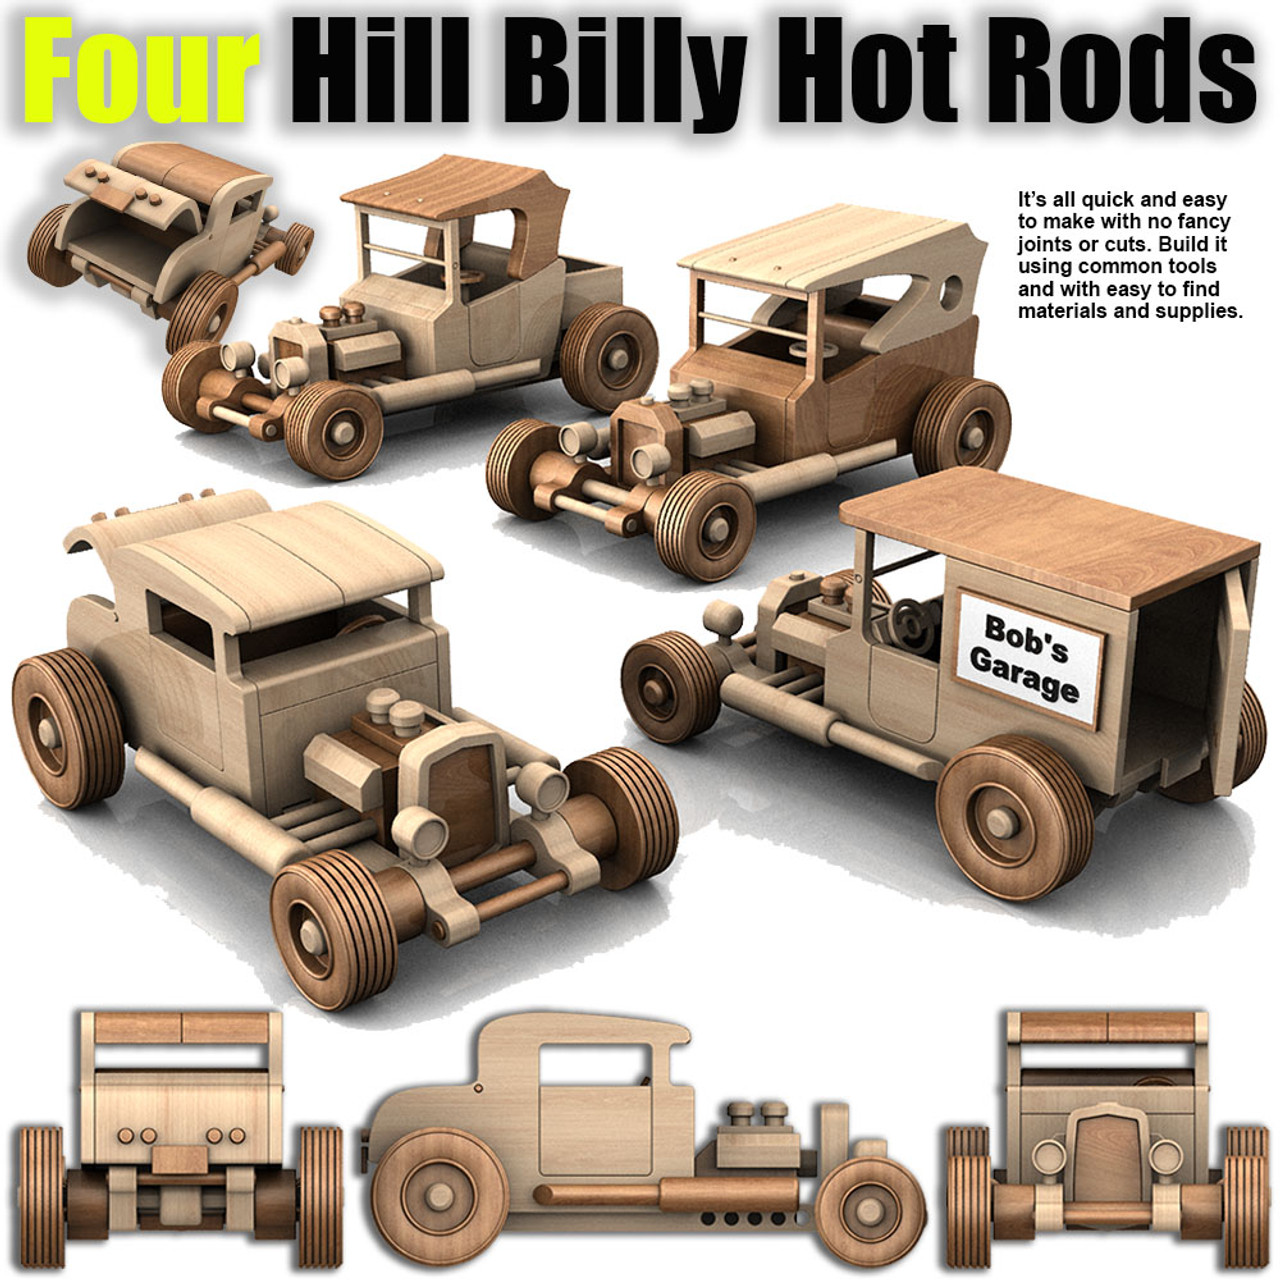 Four Hill Billy Hot Rods Plan Set Wood Toy Plans 4 Pdf Downloads